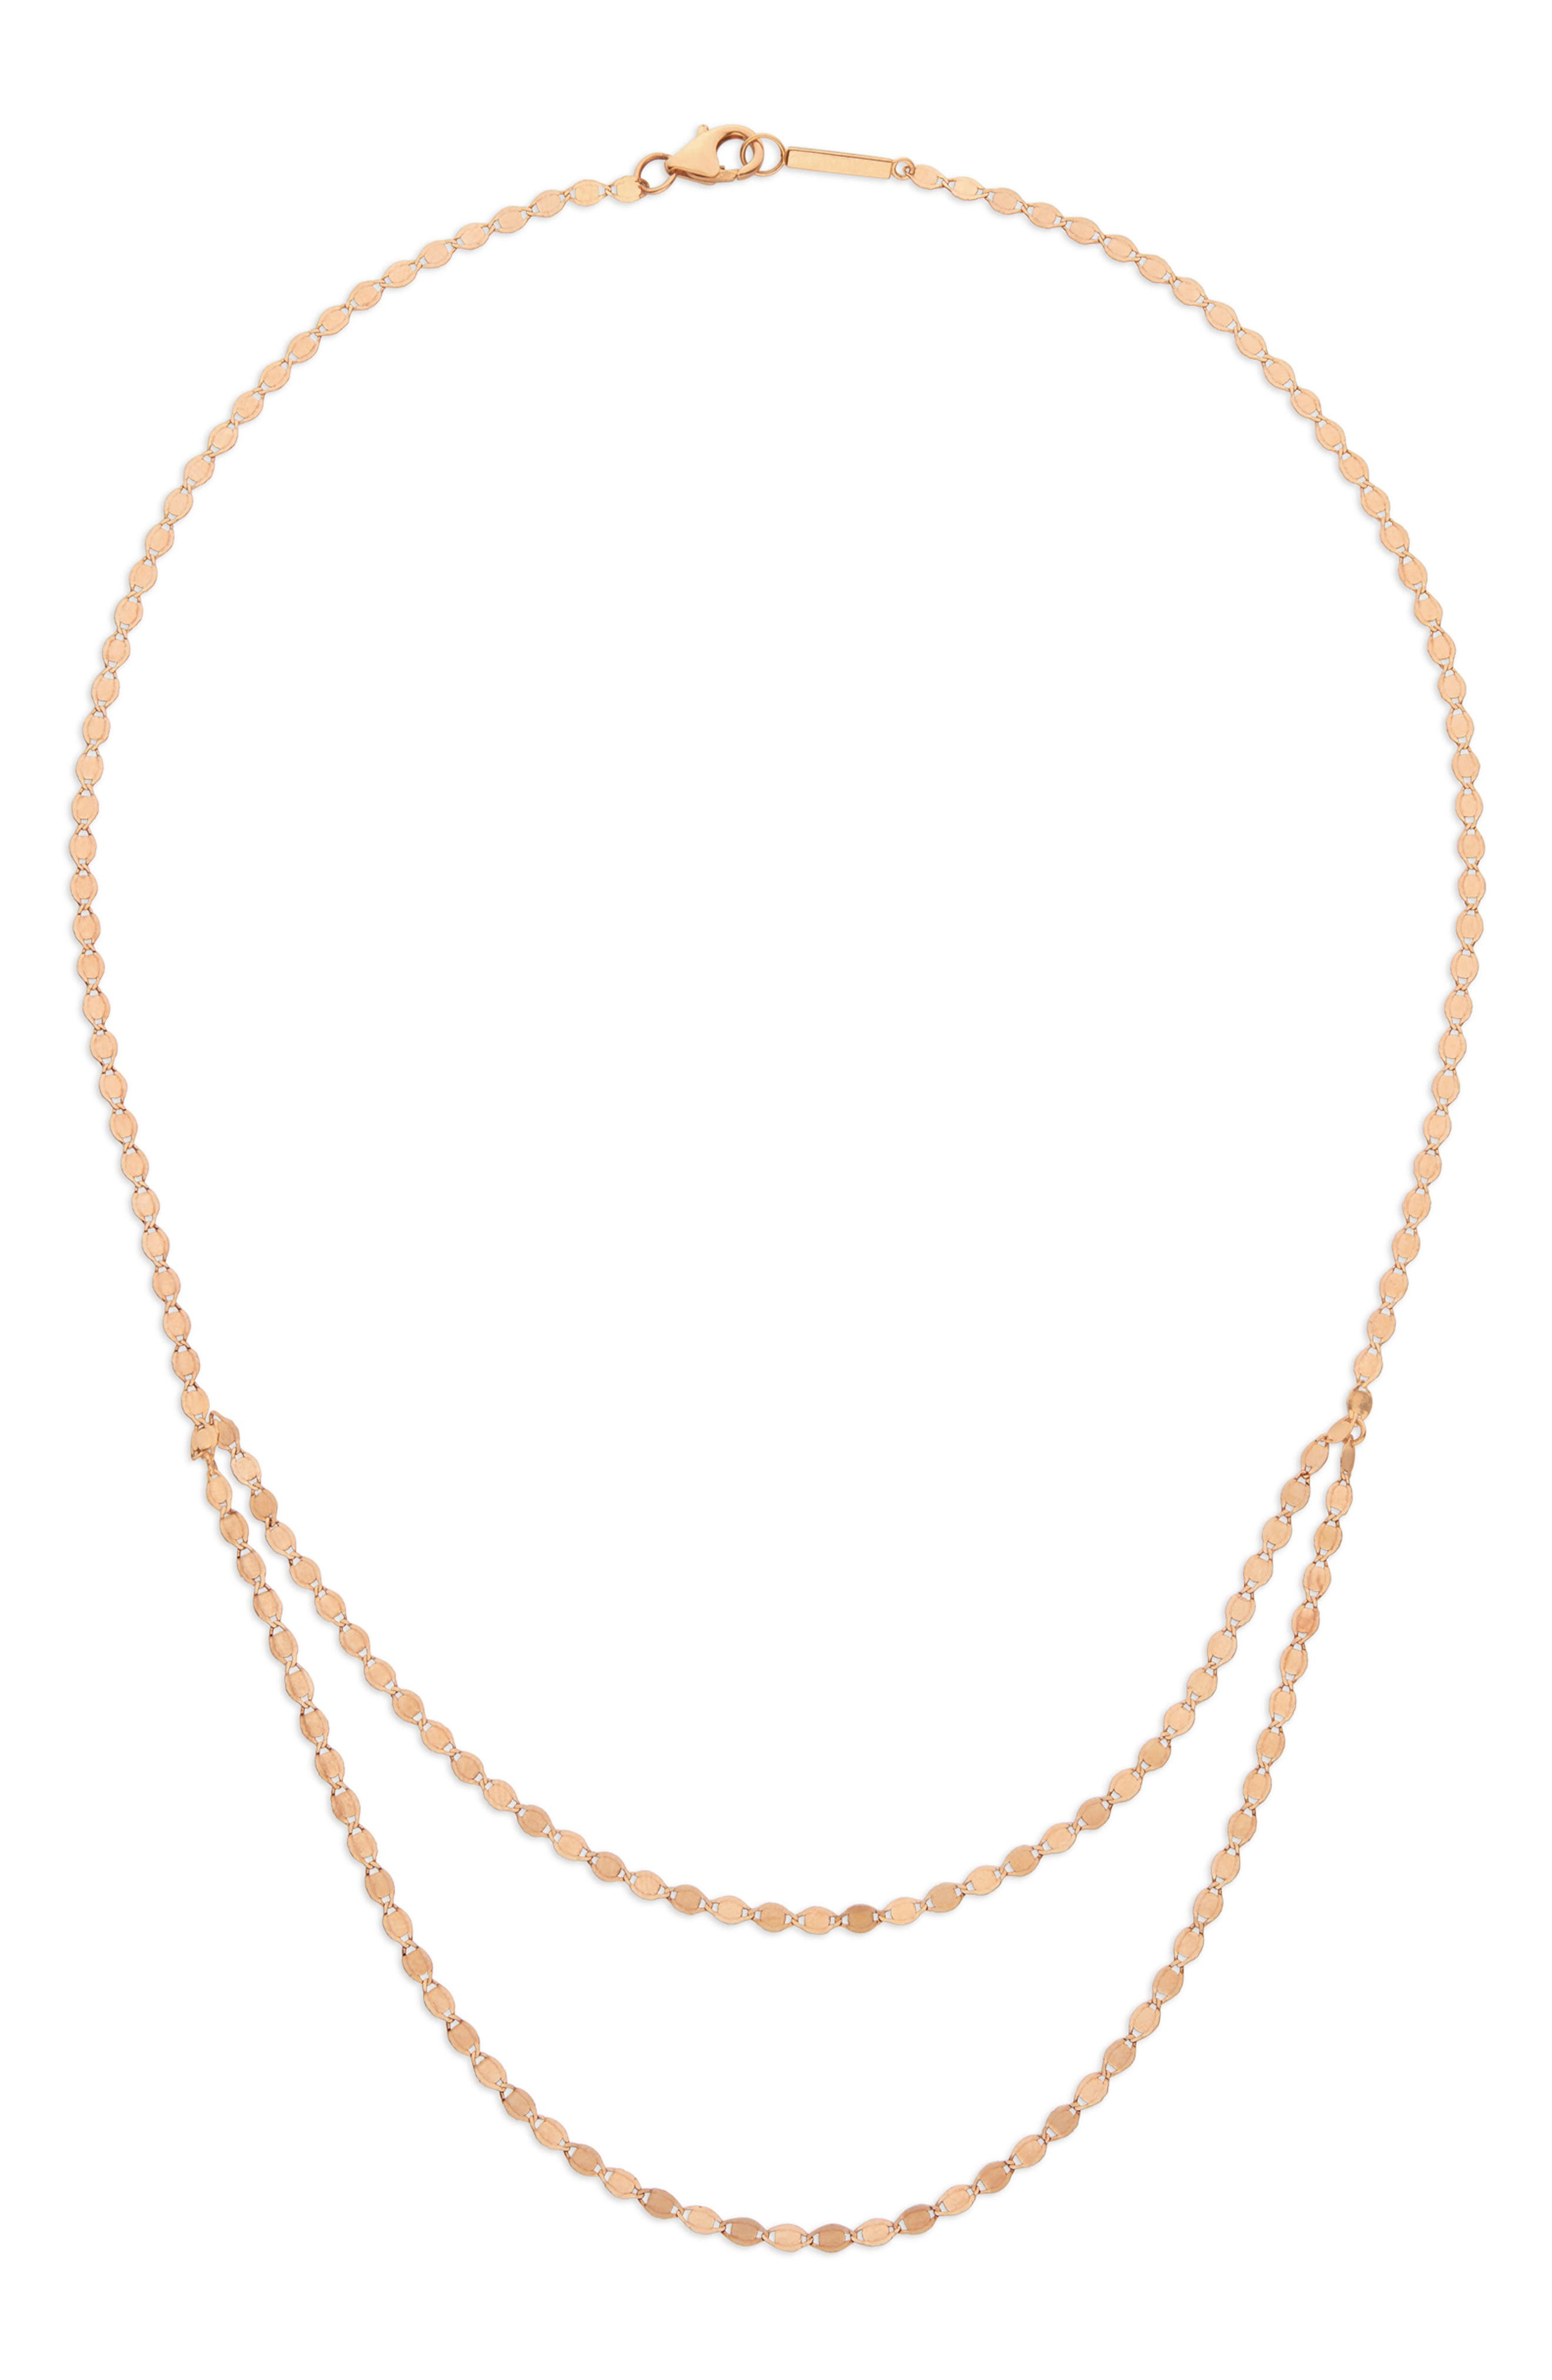 Lana Jewelry Blake Double Layer Long Necklace